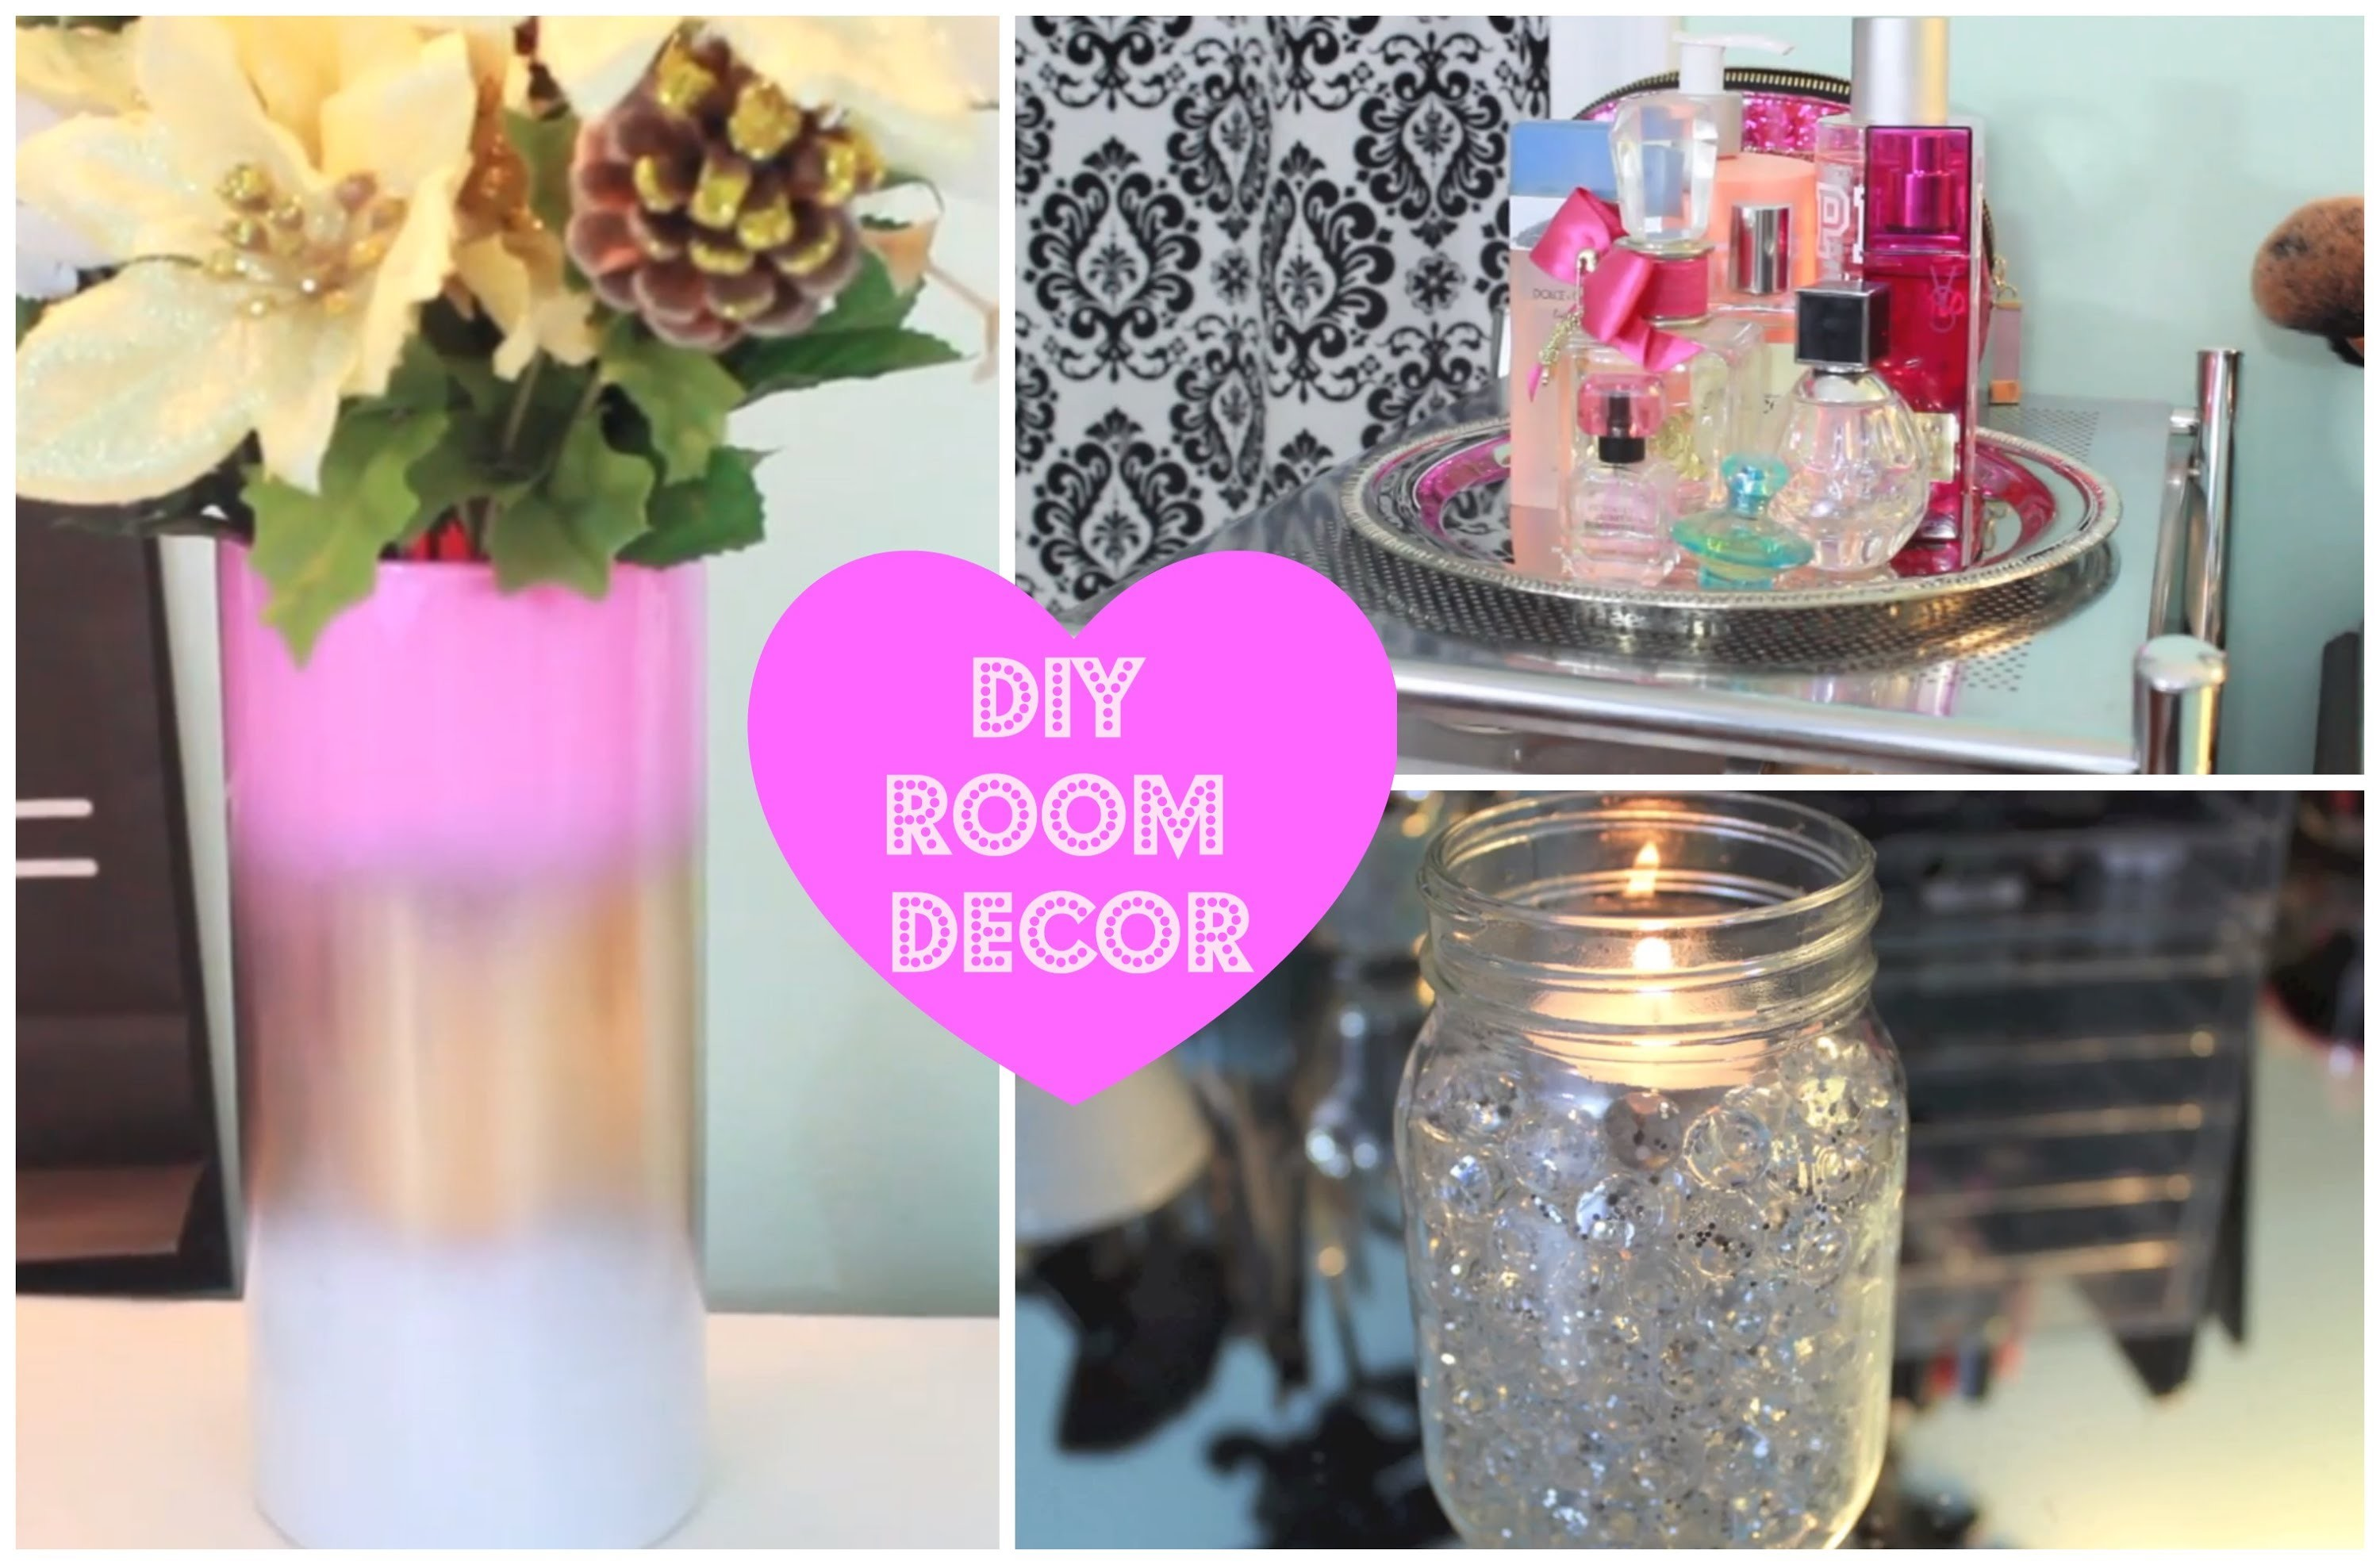 ♡ Adorable DIY Room Decor!! ♡